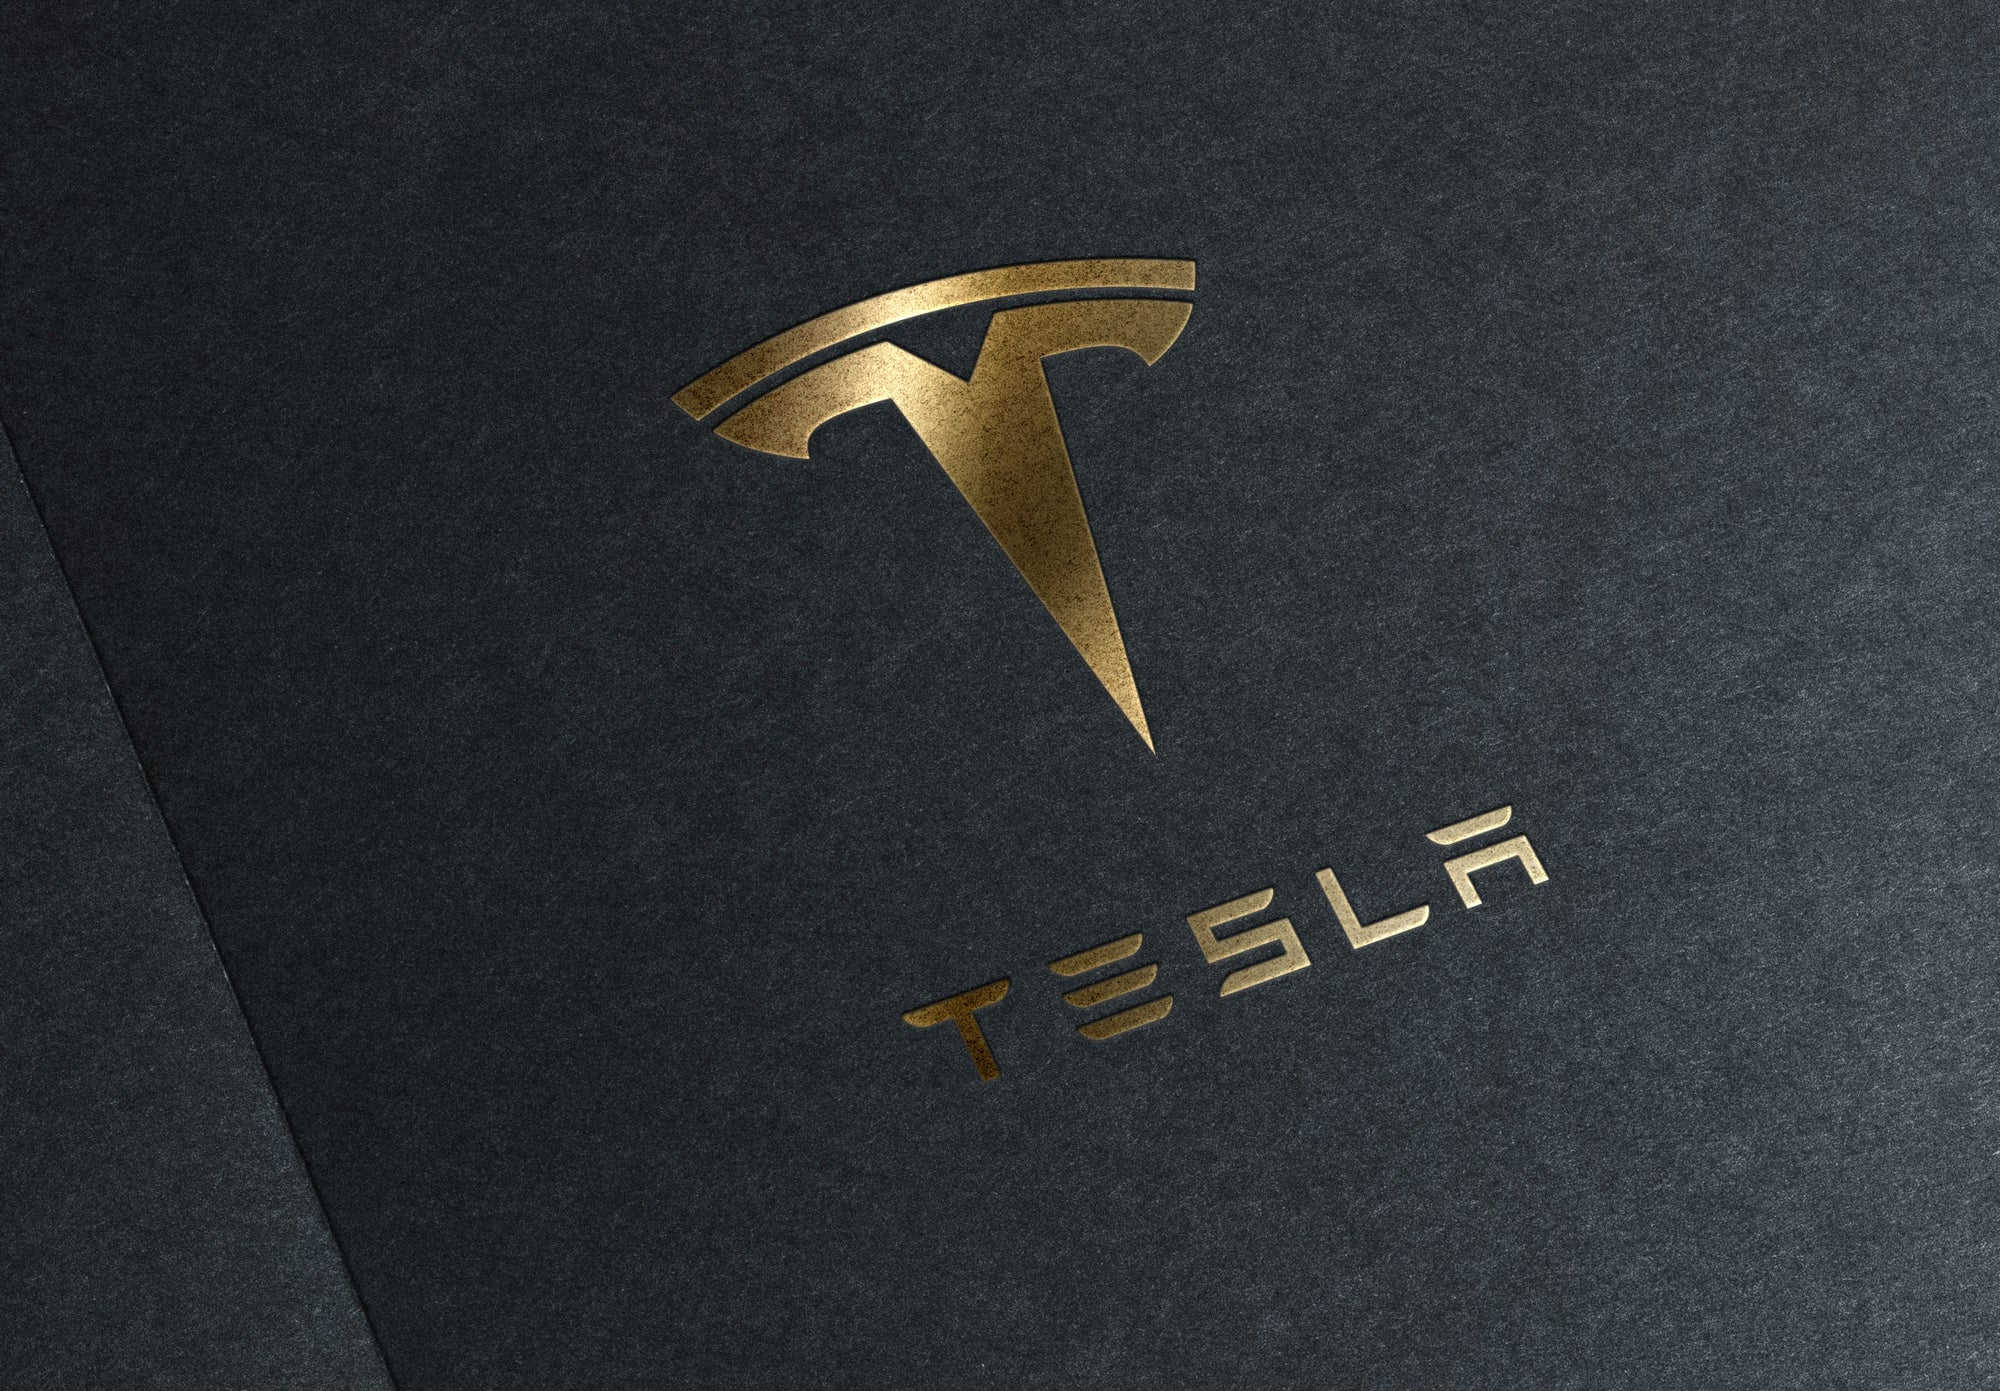 Morgan Stanley Upgrades Tesla (TSLA) To Equal-Weight With $1,360 Price Target, $2,636 Bull Case Scenario